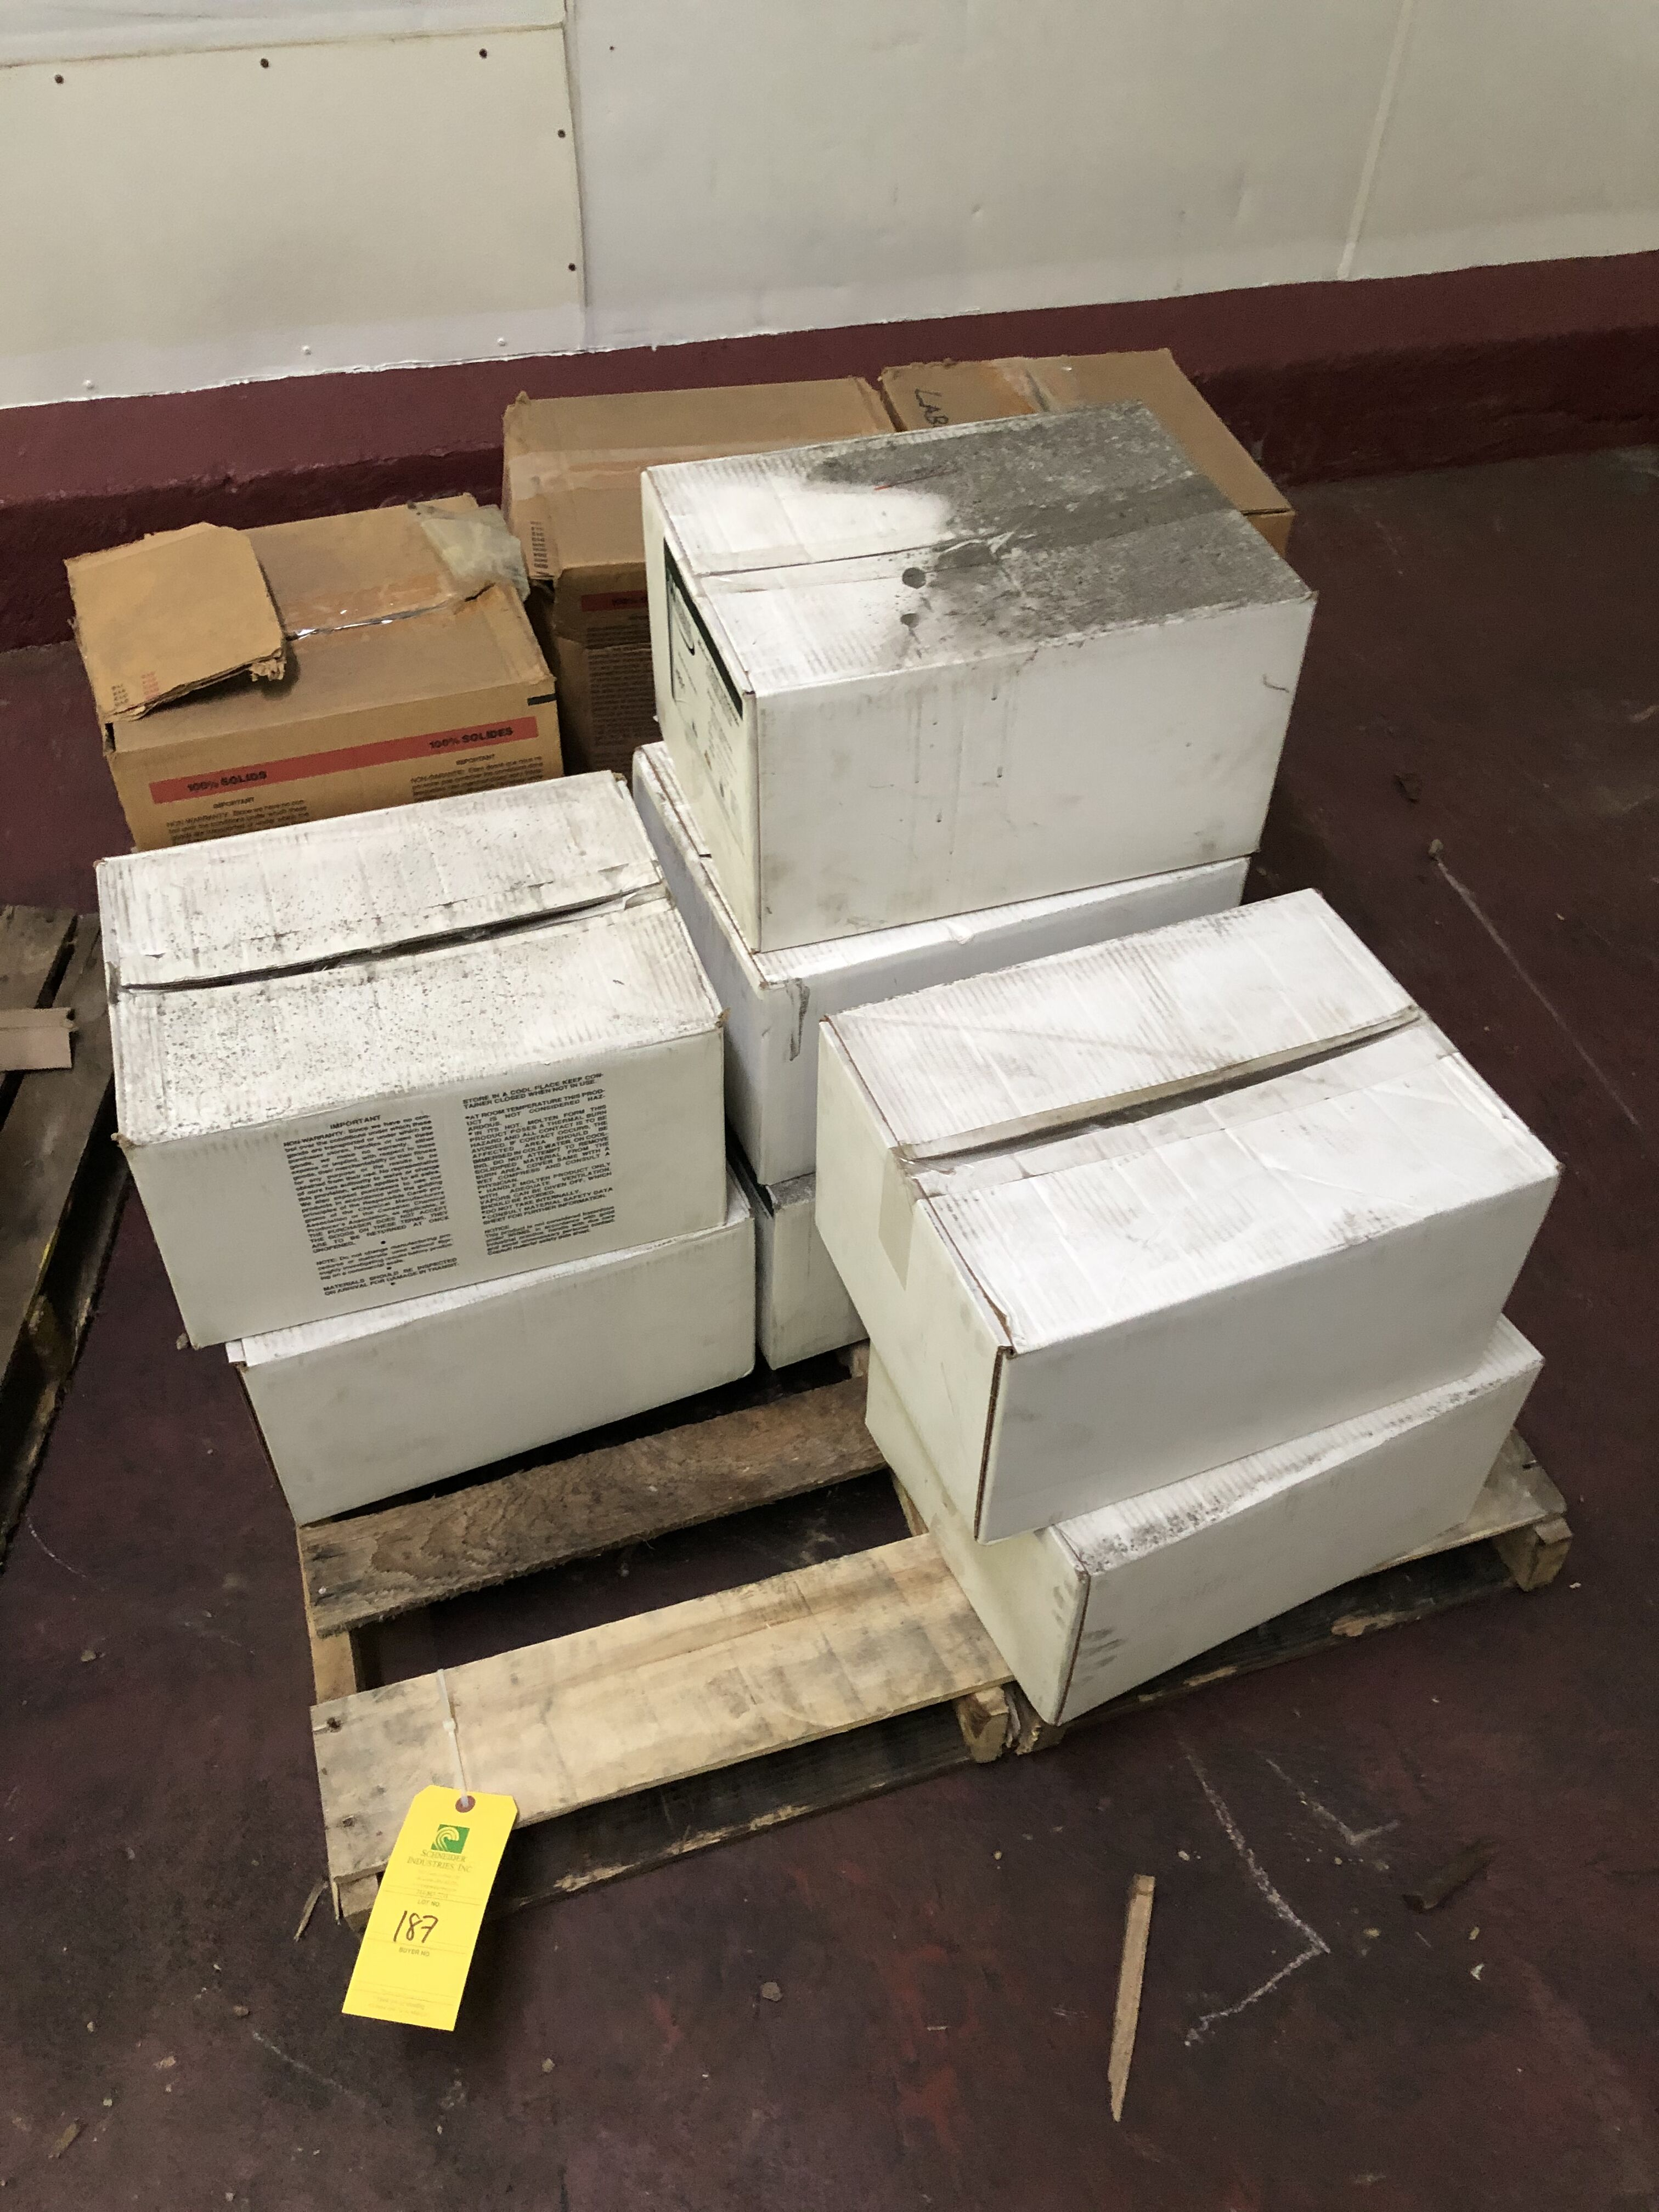 Lot 187 - (6) Boxes of H891 Adhesives, (3) Boxes of Instant Lok Adhesive from National Adhesive